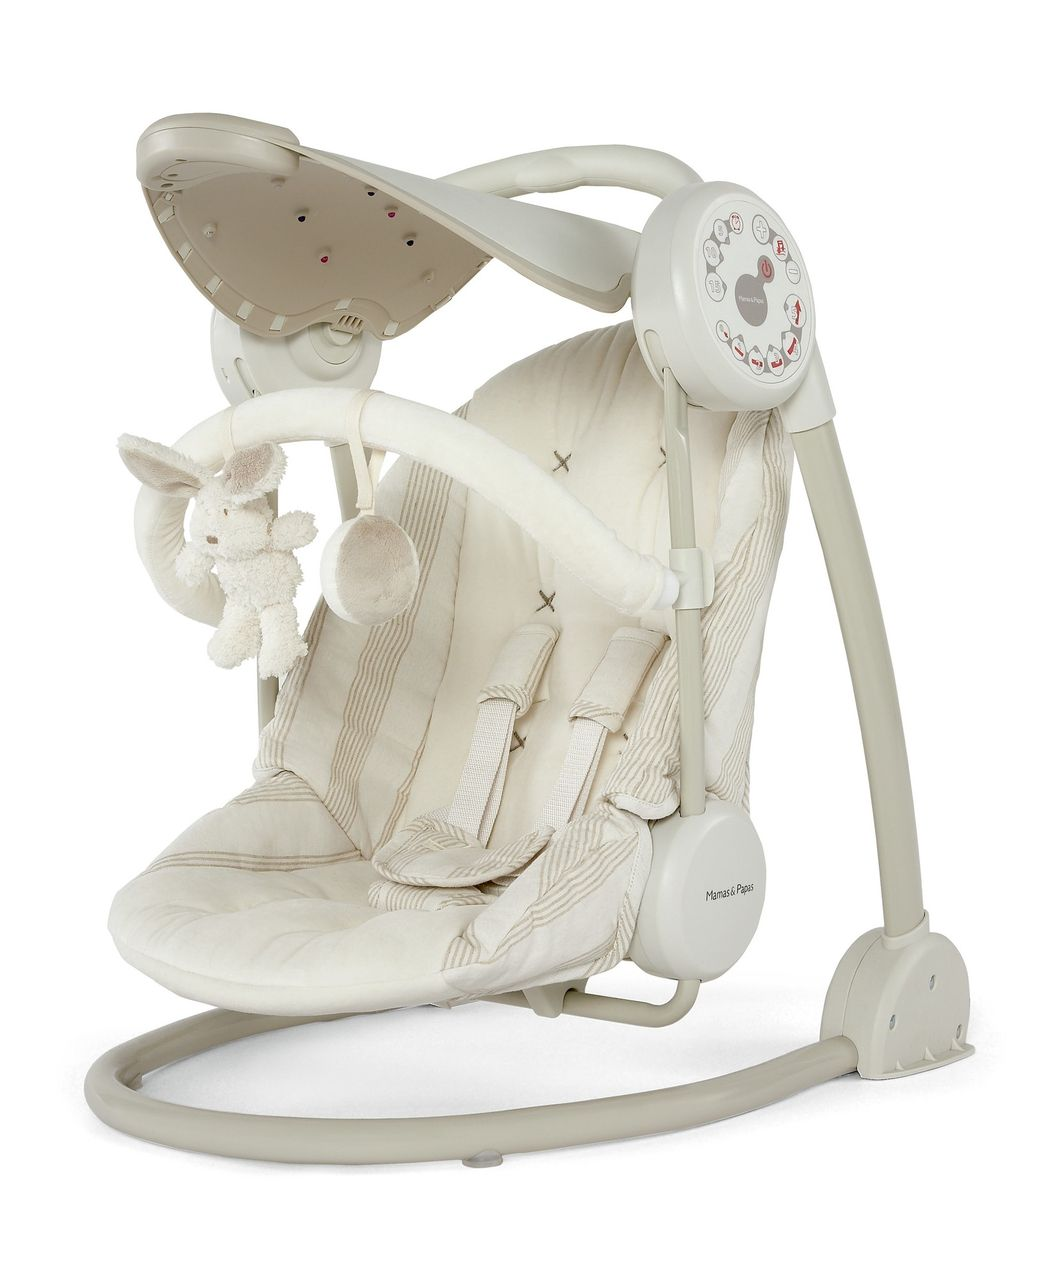 Baby Baby Swings Provided Mamas And Papas Starlite Swing